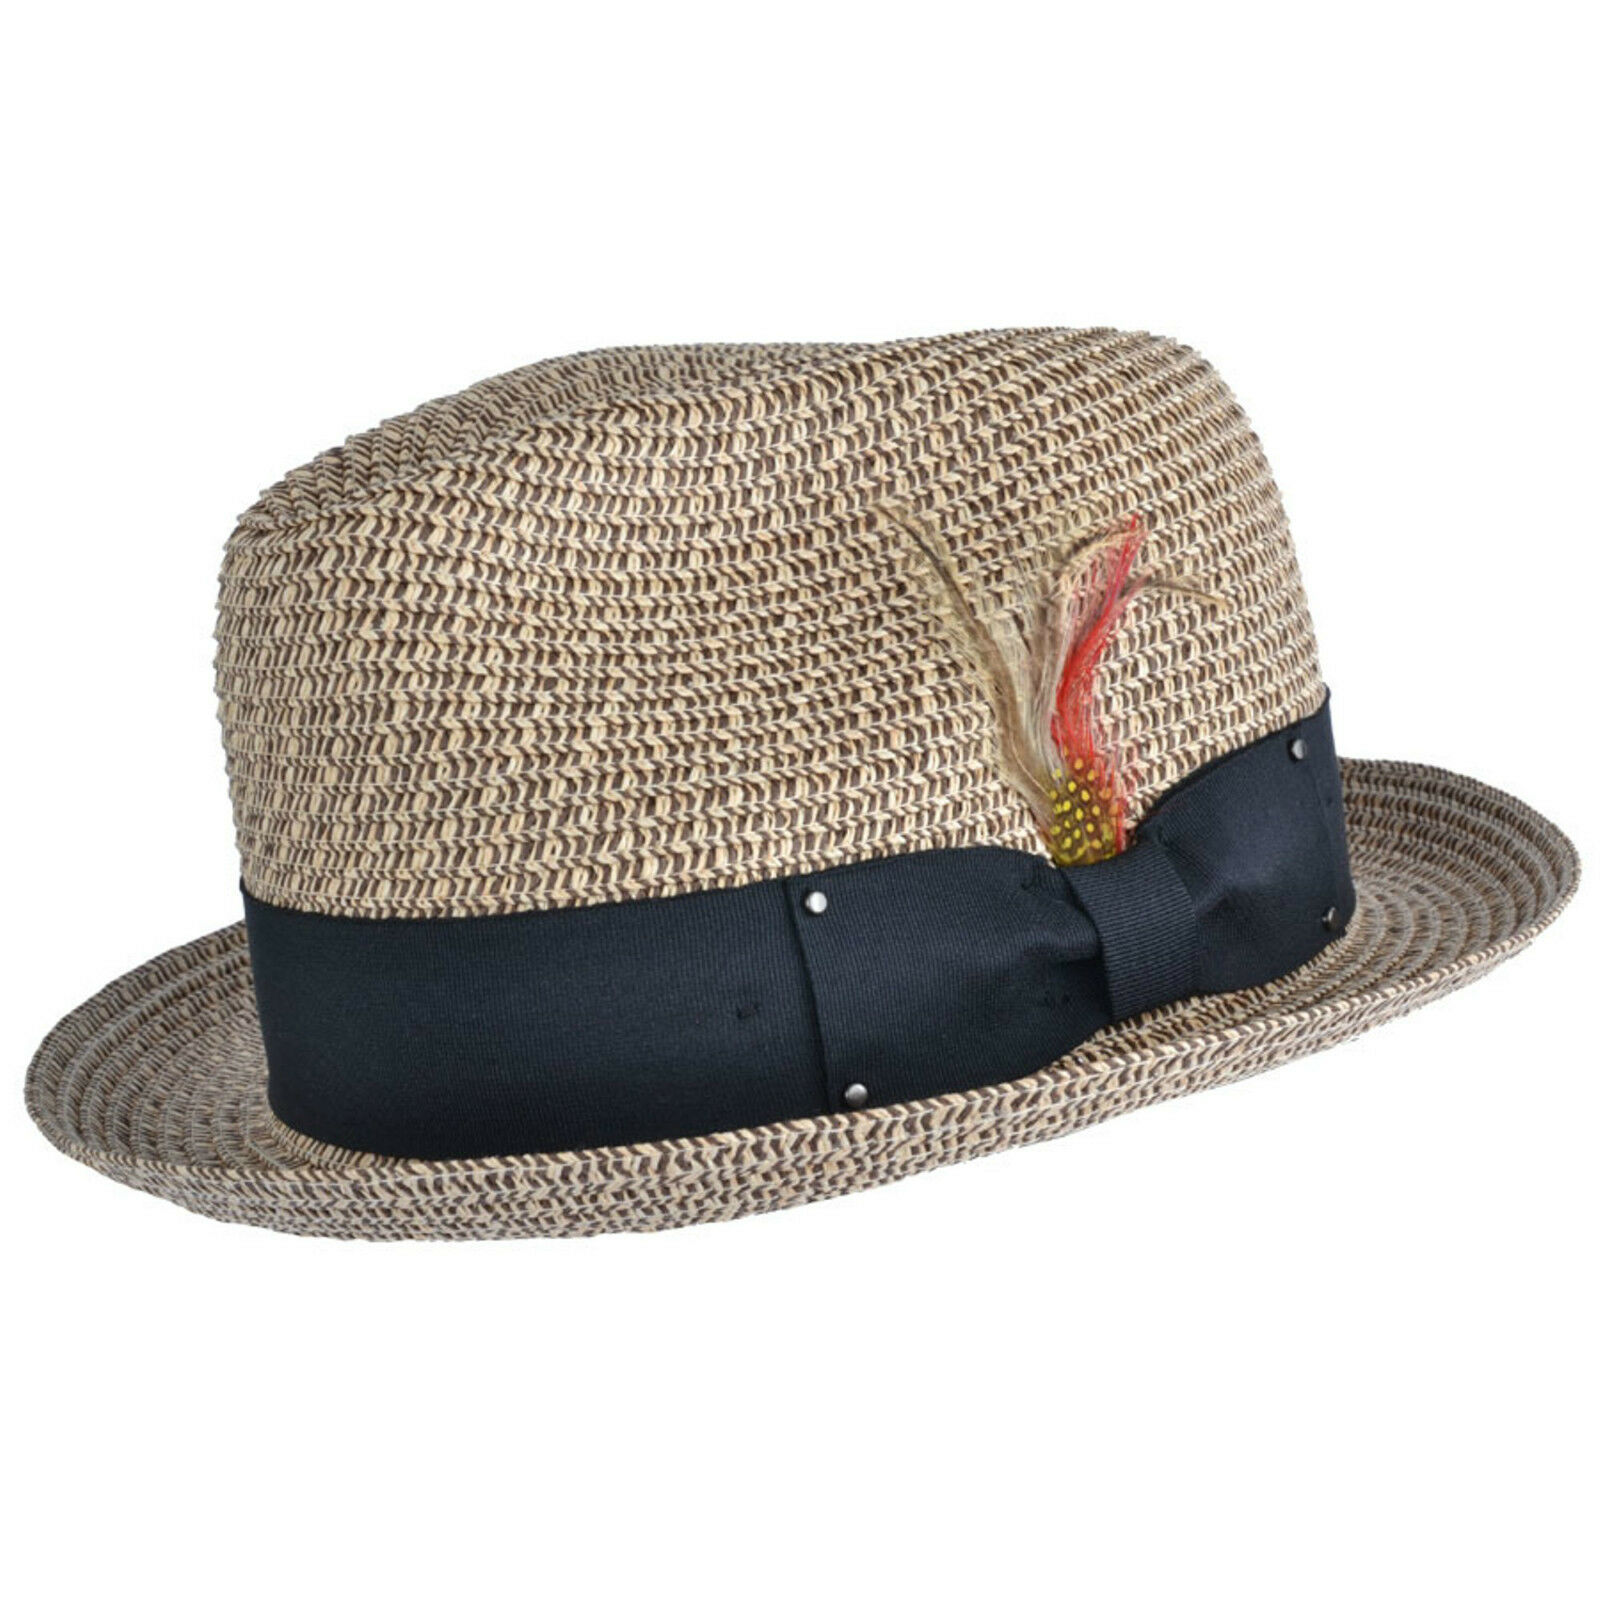 57788cf23c748 UNISEX Crushable Straw Summer C-Crown Trilby Hat With Removable Feather  andAdjustable Sweatband